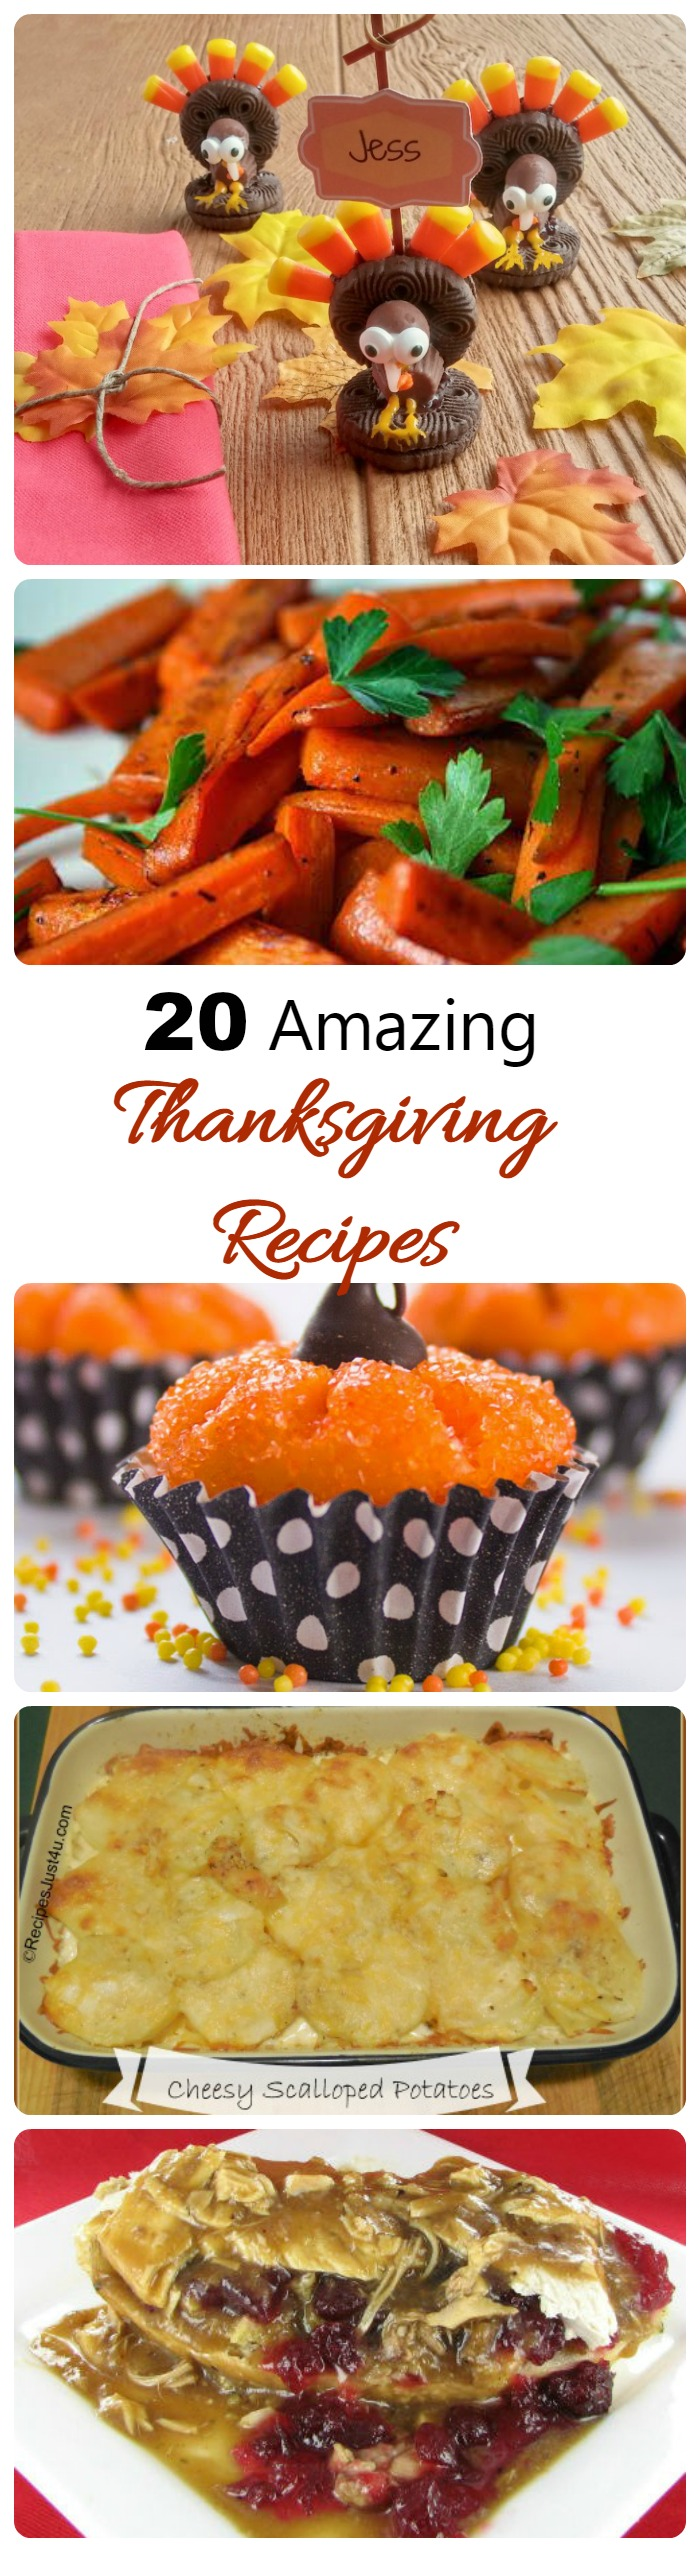 These 20 Amazing Thanksgiving Recipe ideas will make sure that your holiday celebration is a huge success.